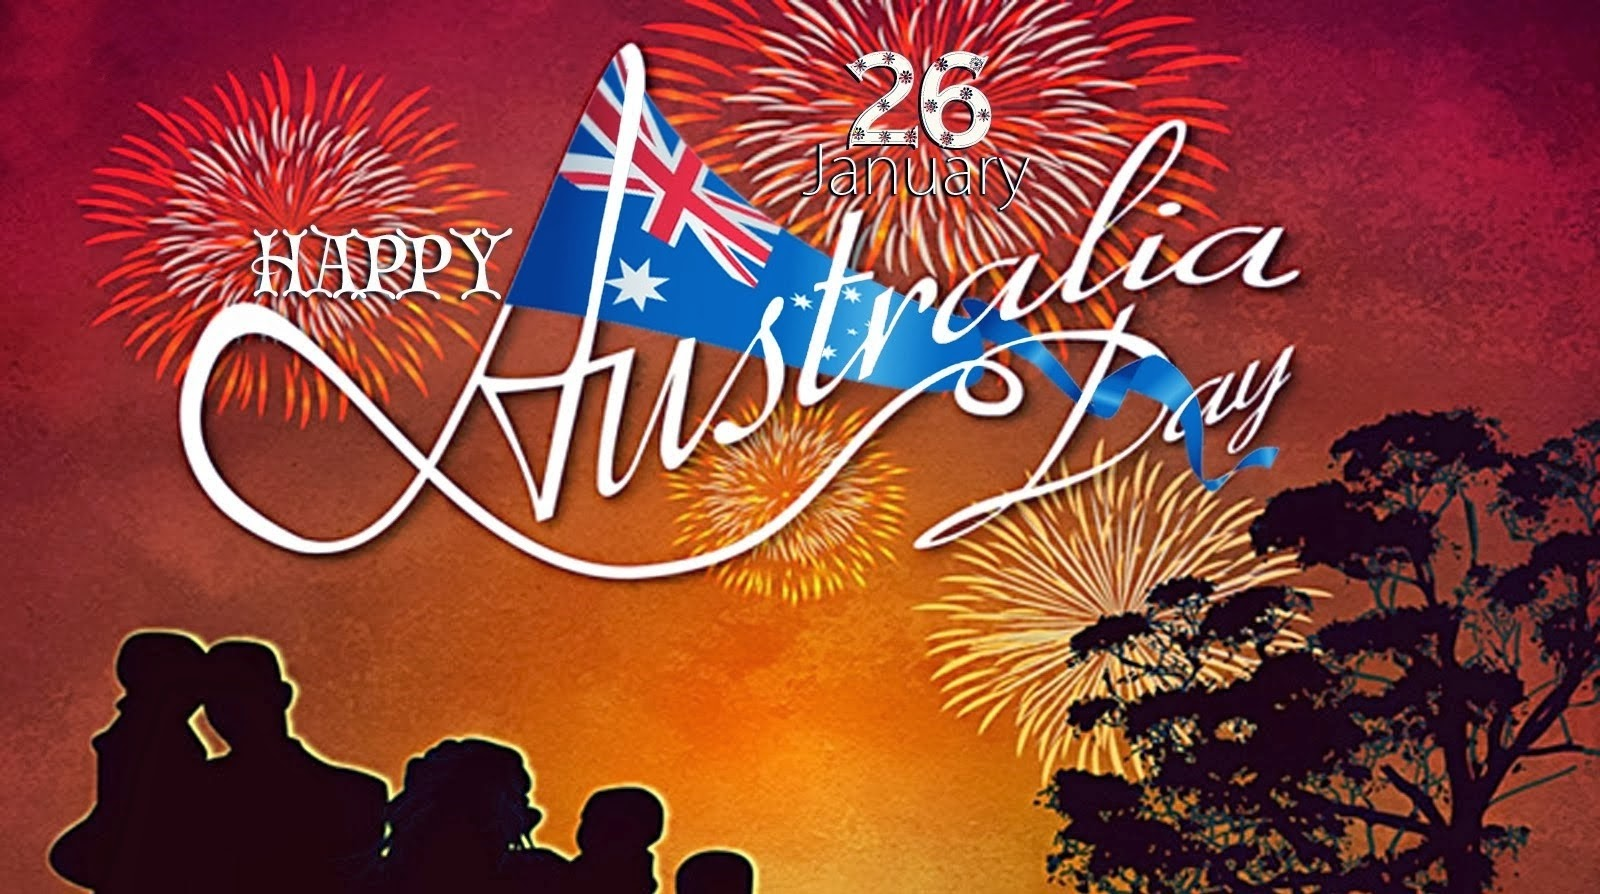 australia day images for whatsapp,twitter